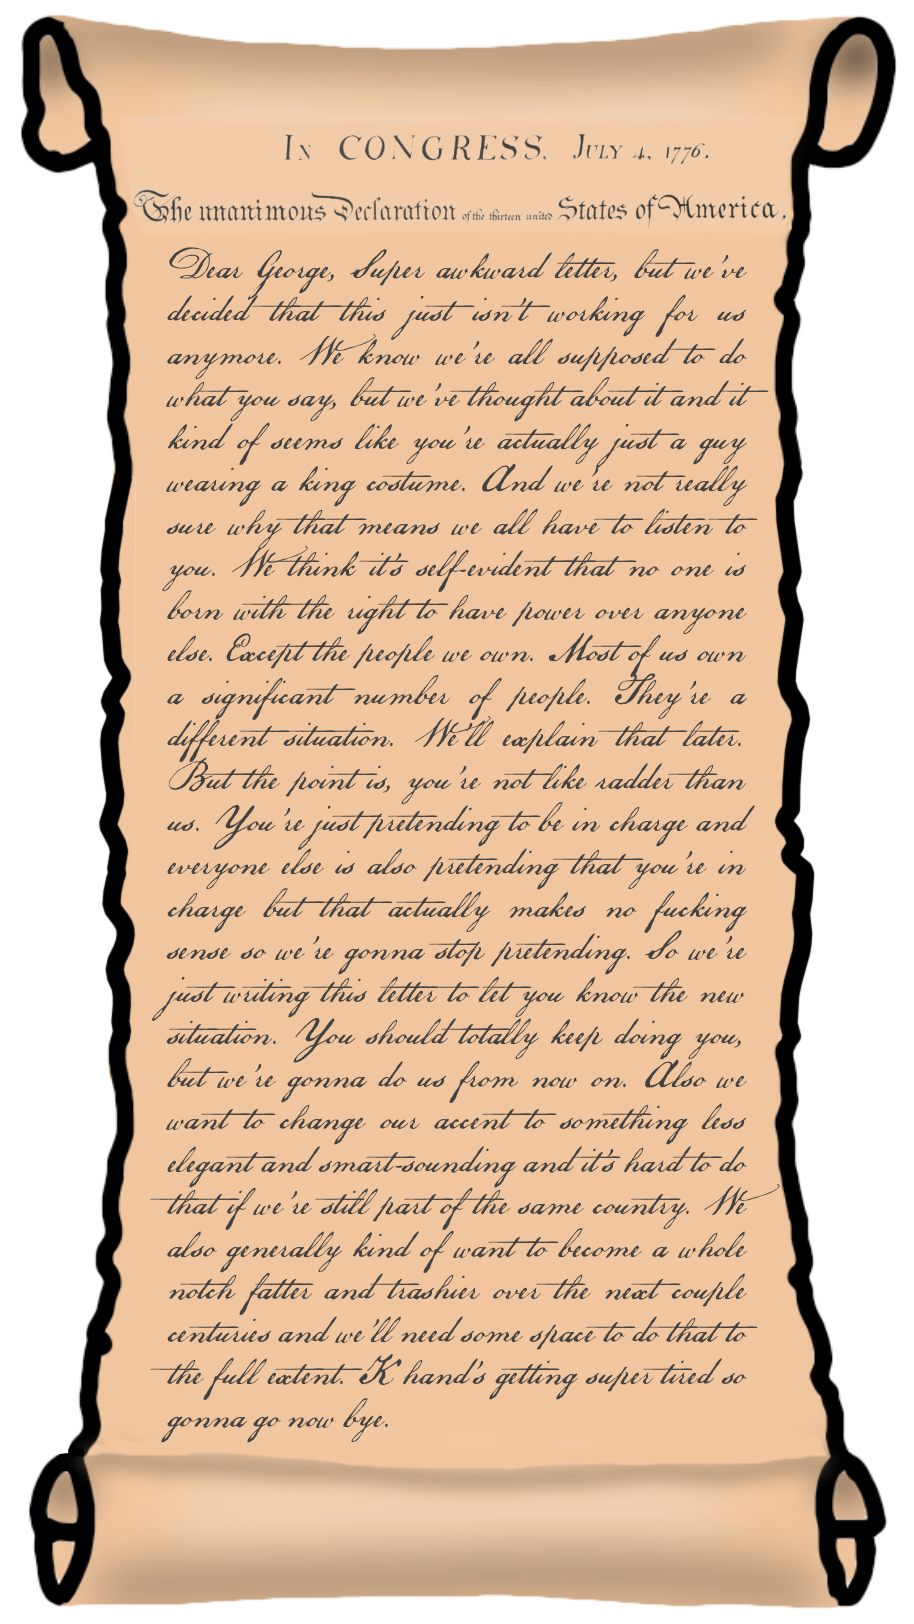 Dear George, Super awkward letter, but we've decided that this just isn't working for us anymore. We know we're all supposed to do what you say, but we've thought about it and it kind of seems like you're actually just a guy wearing a king costume. And we're not really sure why that means we all have to listen to you. We think it's self-evident that no one is born with the right to have power over anyone else. Except the people we own. Most of us own a significant number of people. They're a different situation. We'll explain that later. But the point is, you're not like radder than us. You're just pretending to be in charge and everyone else is also pretending that you're in charge but that actually makes no fucking sense so we're gonna stop pretending. So we're just writing this letter to let you know the new situation. You should totally keep doing you, but we're gonna do us from now on. Also we want to change our accent to something less elegant and smart-sounding and it's hard to do that if we're still part of the same country. We also generally kind of want to become a whole notch fatter and trashier over the next couple centuries and we'll need some space to do that to the full extent. K hand's getting super tired so gonna go now bye.